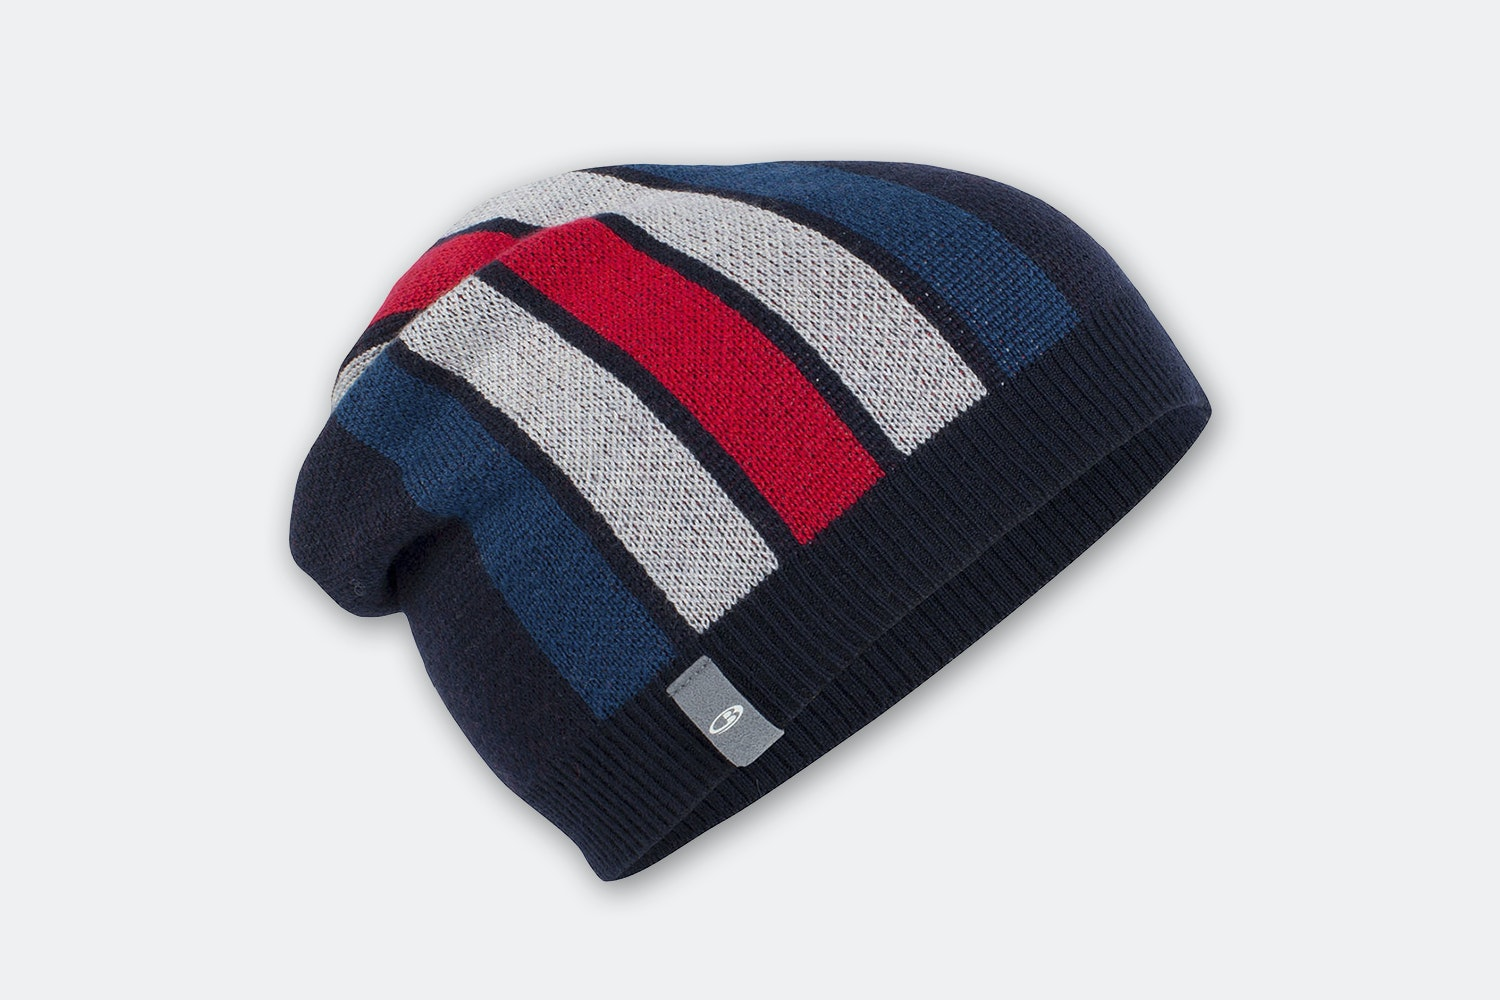 Coronet Beanie - Midnight Navy/Largo/Blizzard Hthr